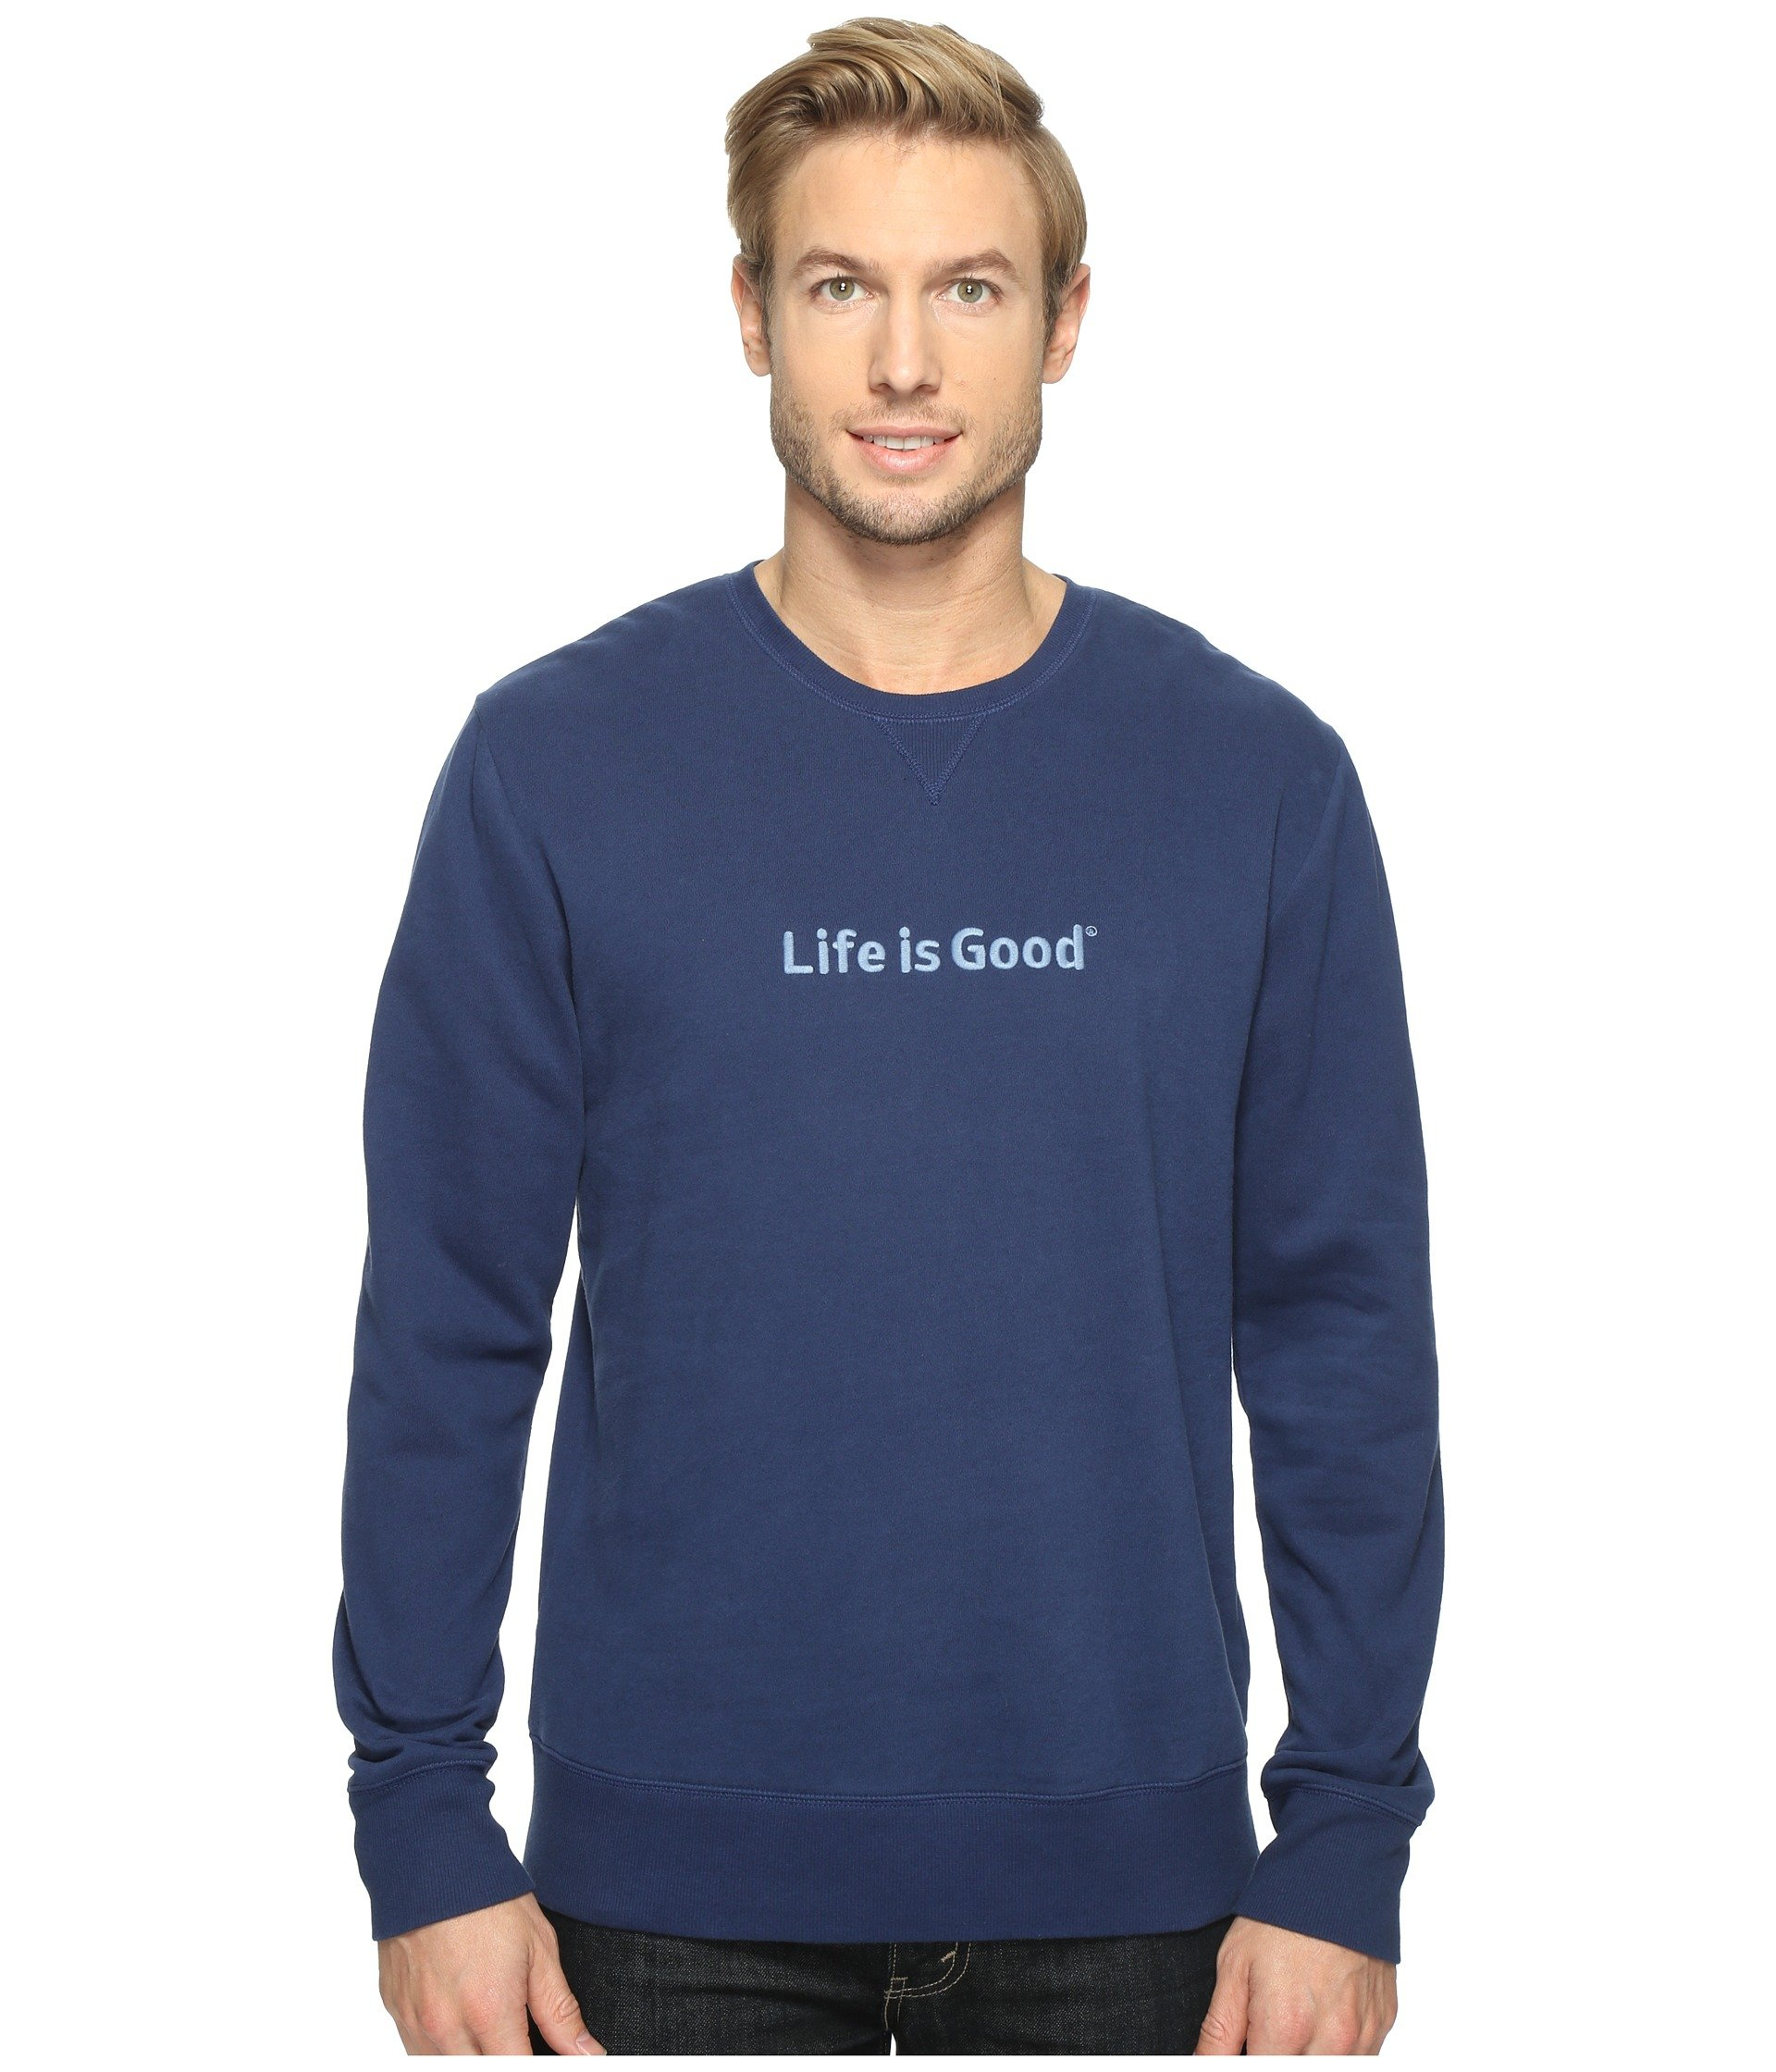 Buzo o Chaqueta Deportiva para Hombre Life is Good Life is Good® Go-To Crew Sweatshirt  + Life is Good en VeoyCompro.net